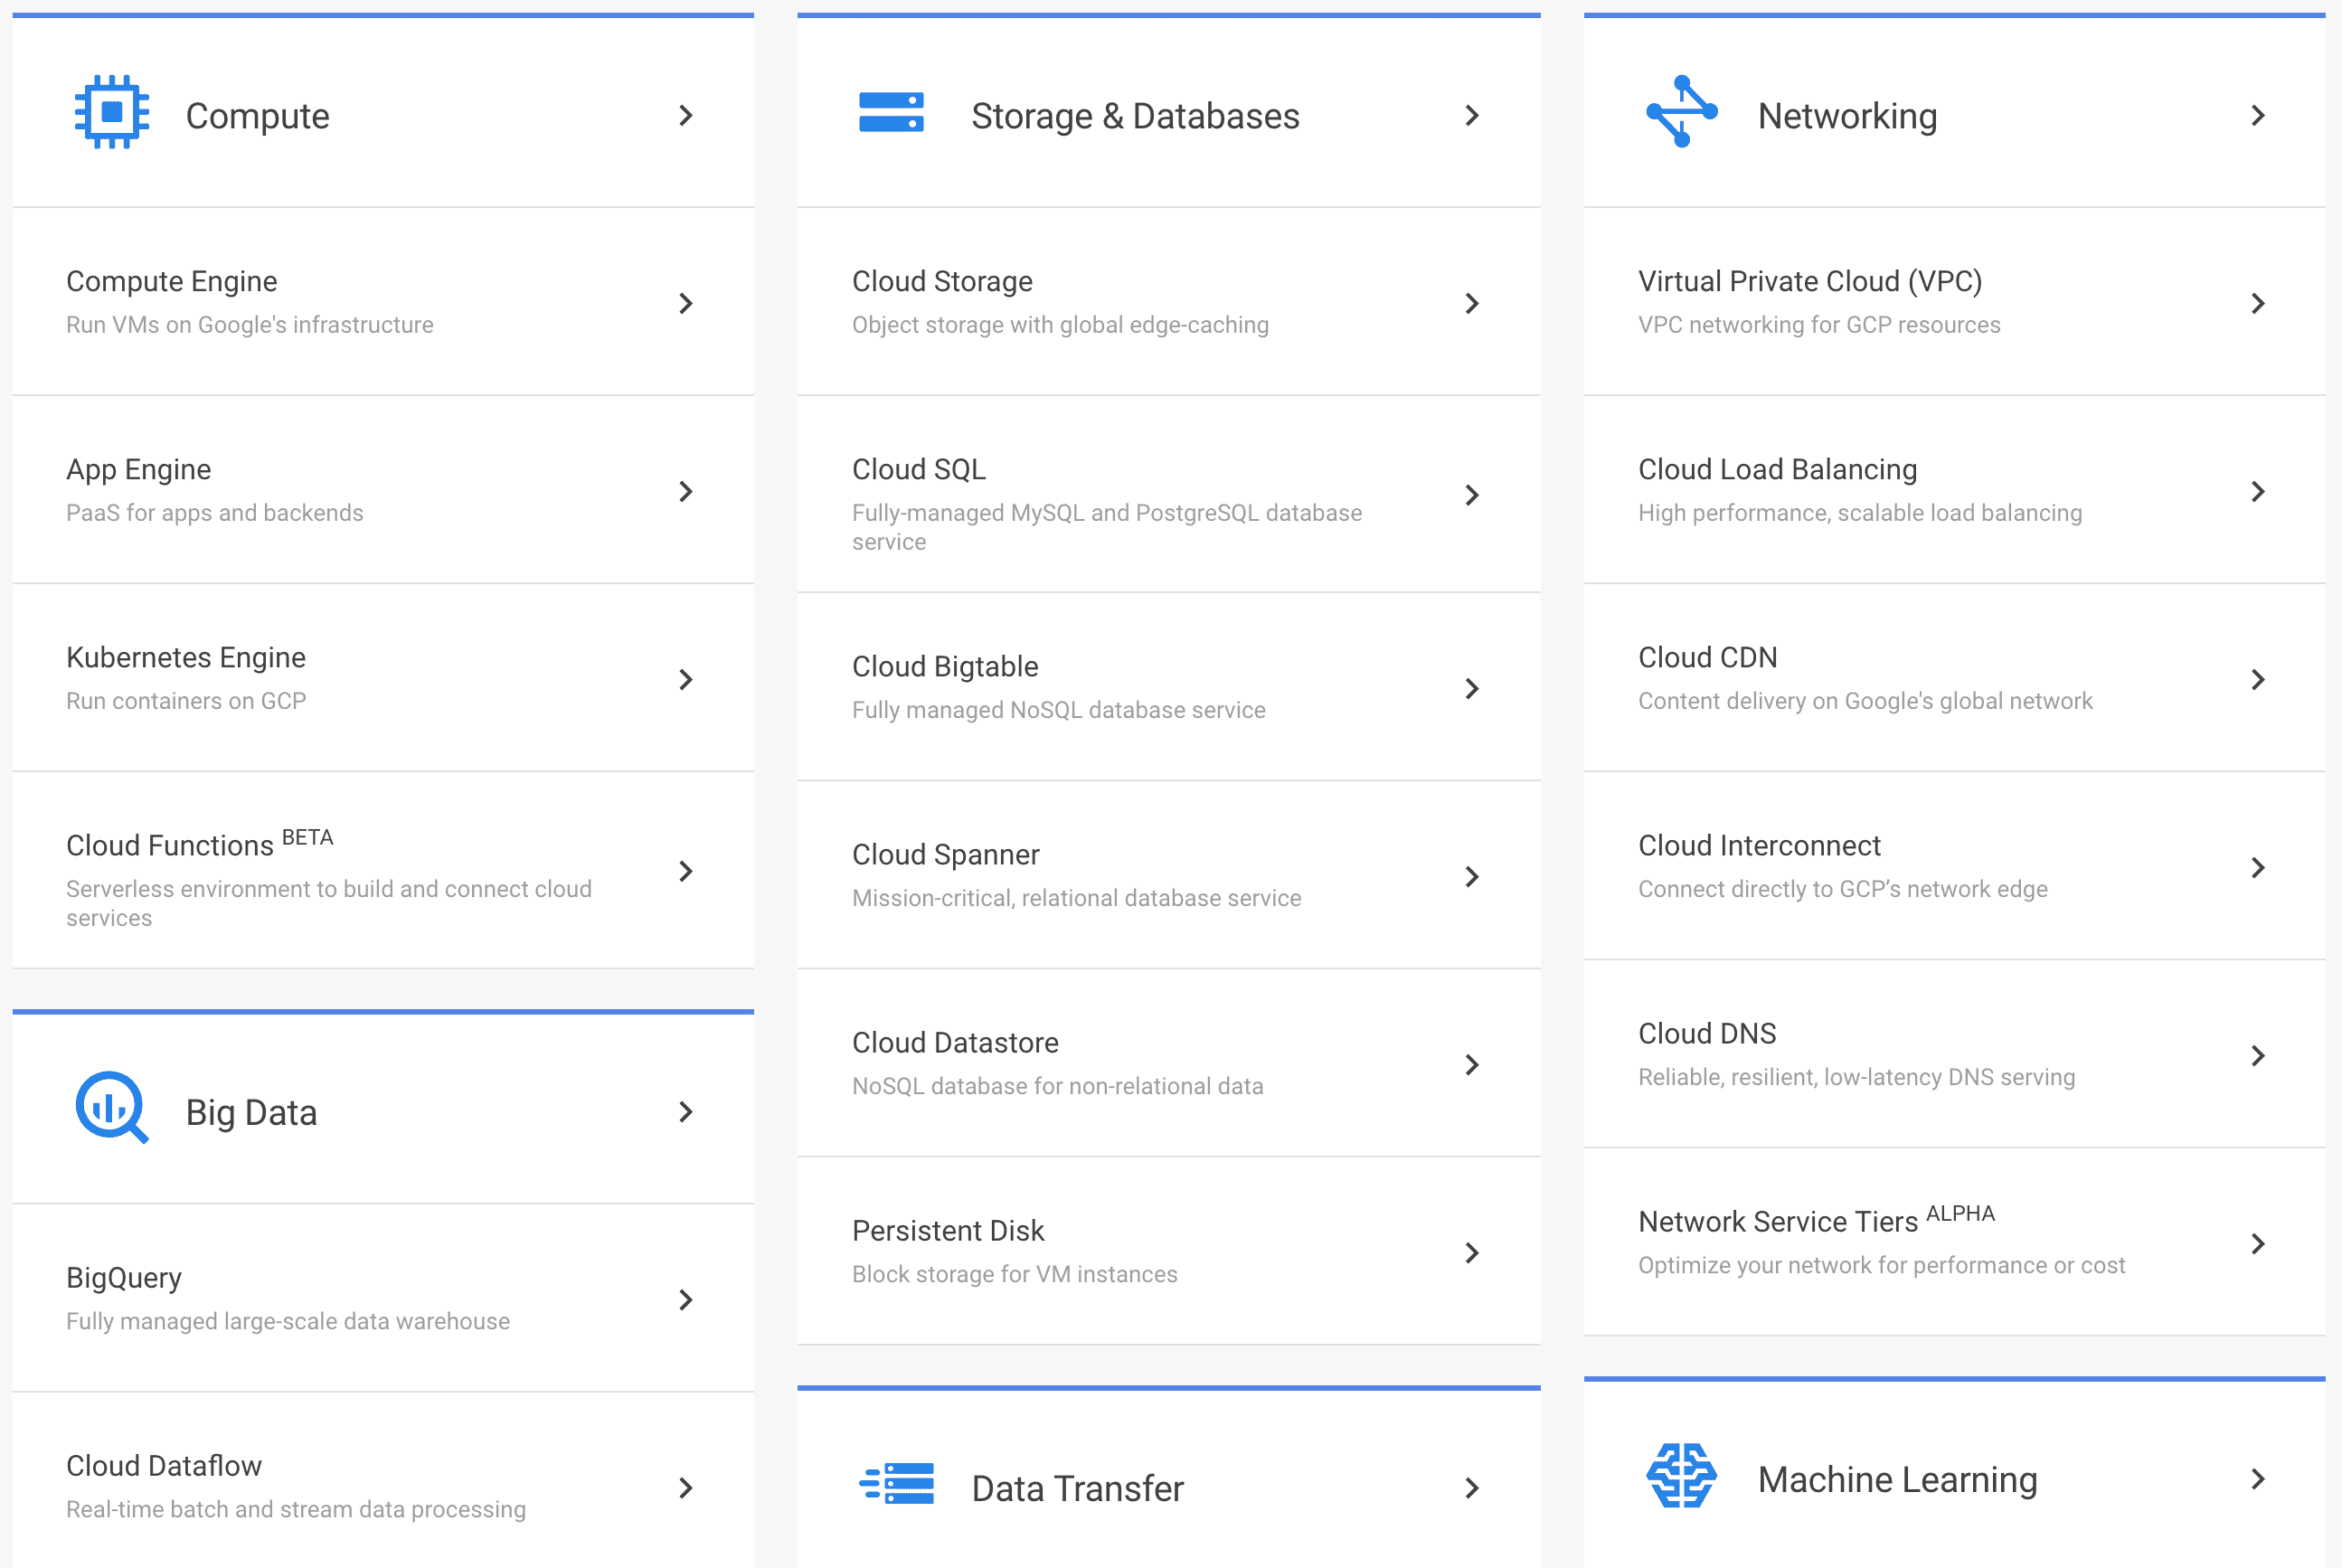 GCP Features / Services